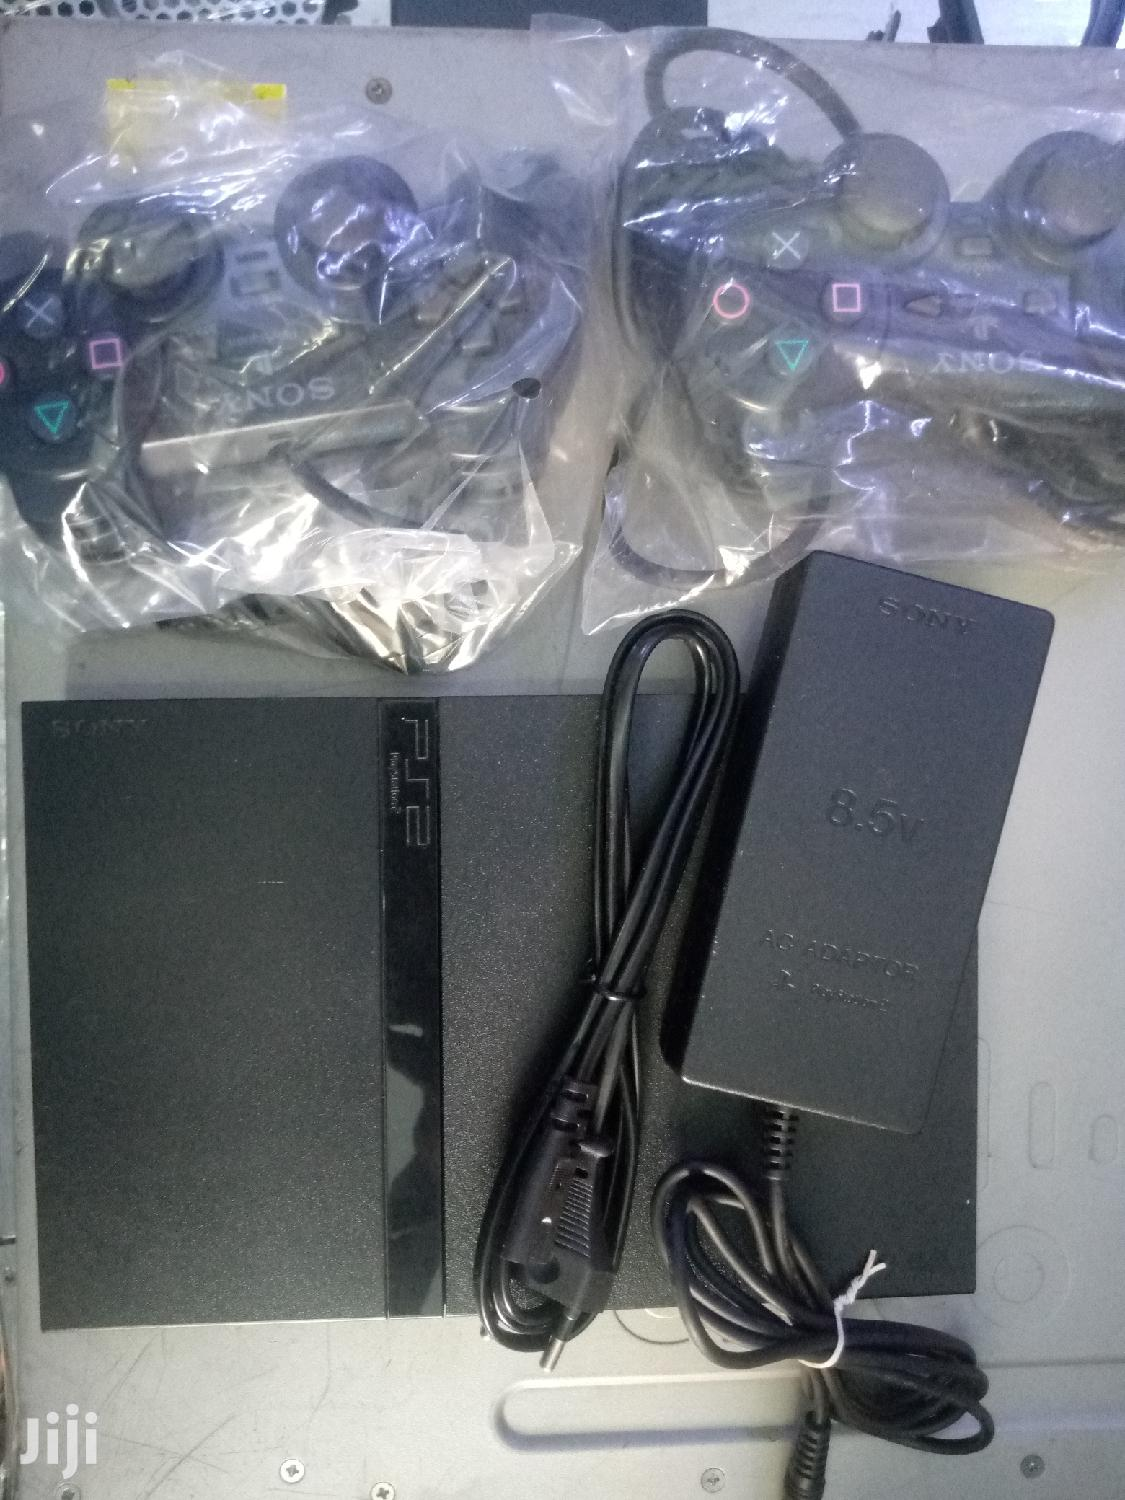 Archive: Playstation 2 Video Game Consoles